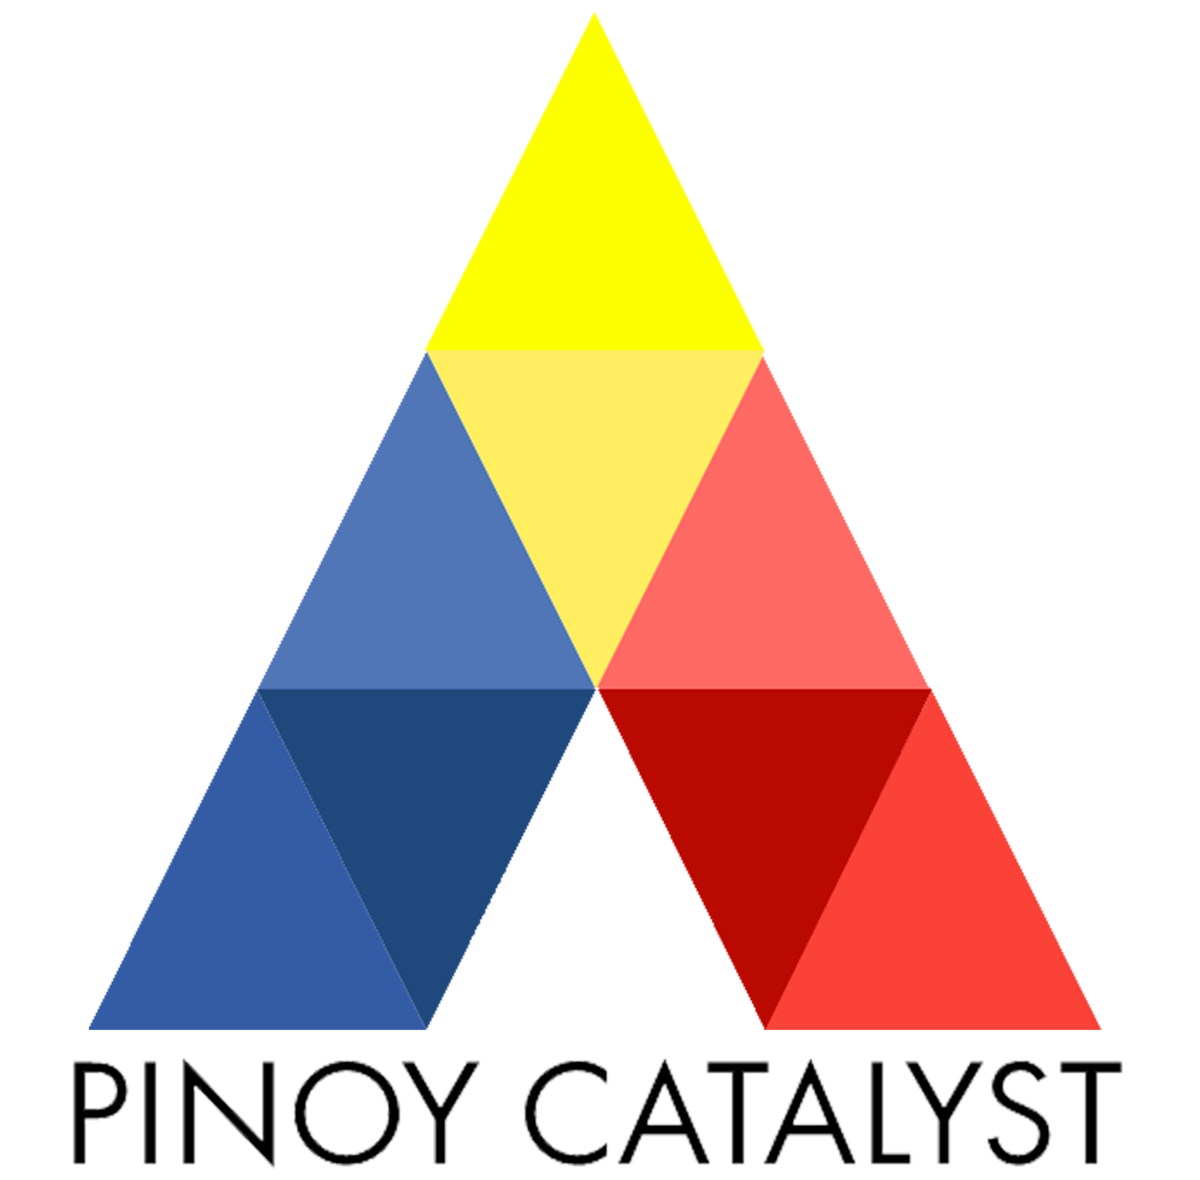 PINOY CATALYST